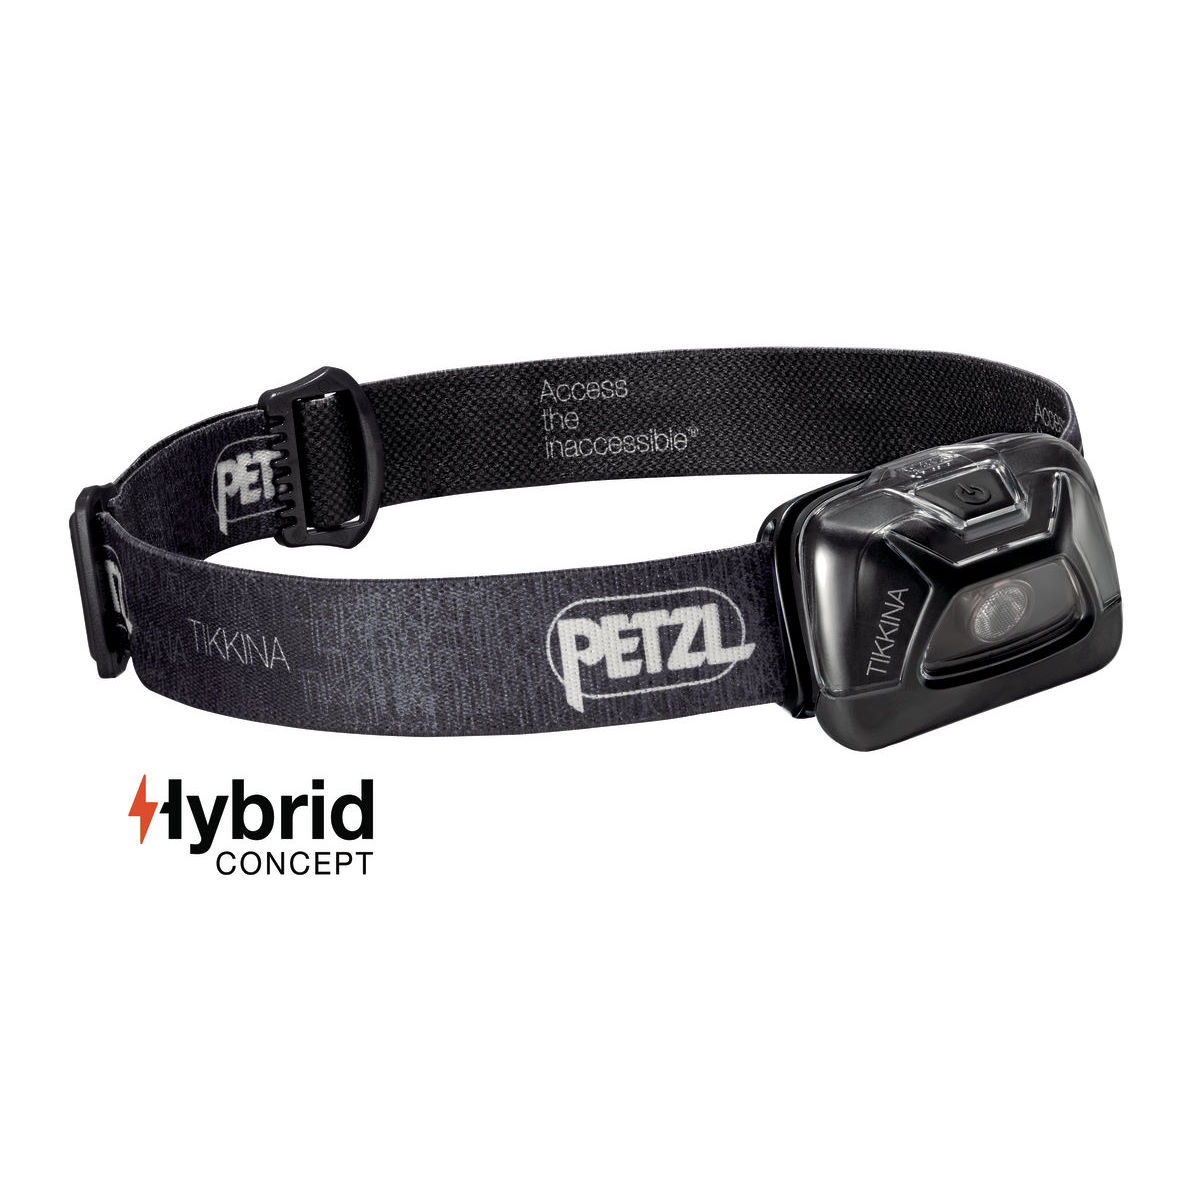 Lampe frontale Petzl TIKKINA® - one size Noir Lampes frontales